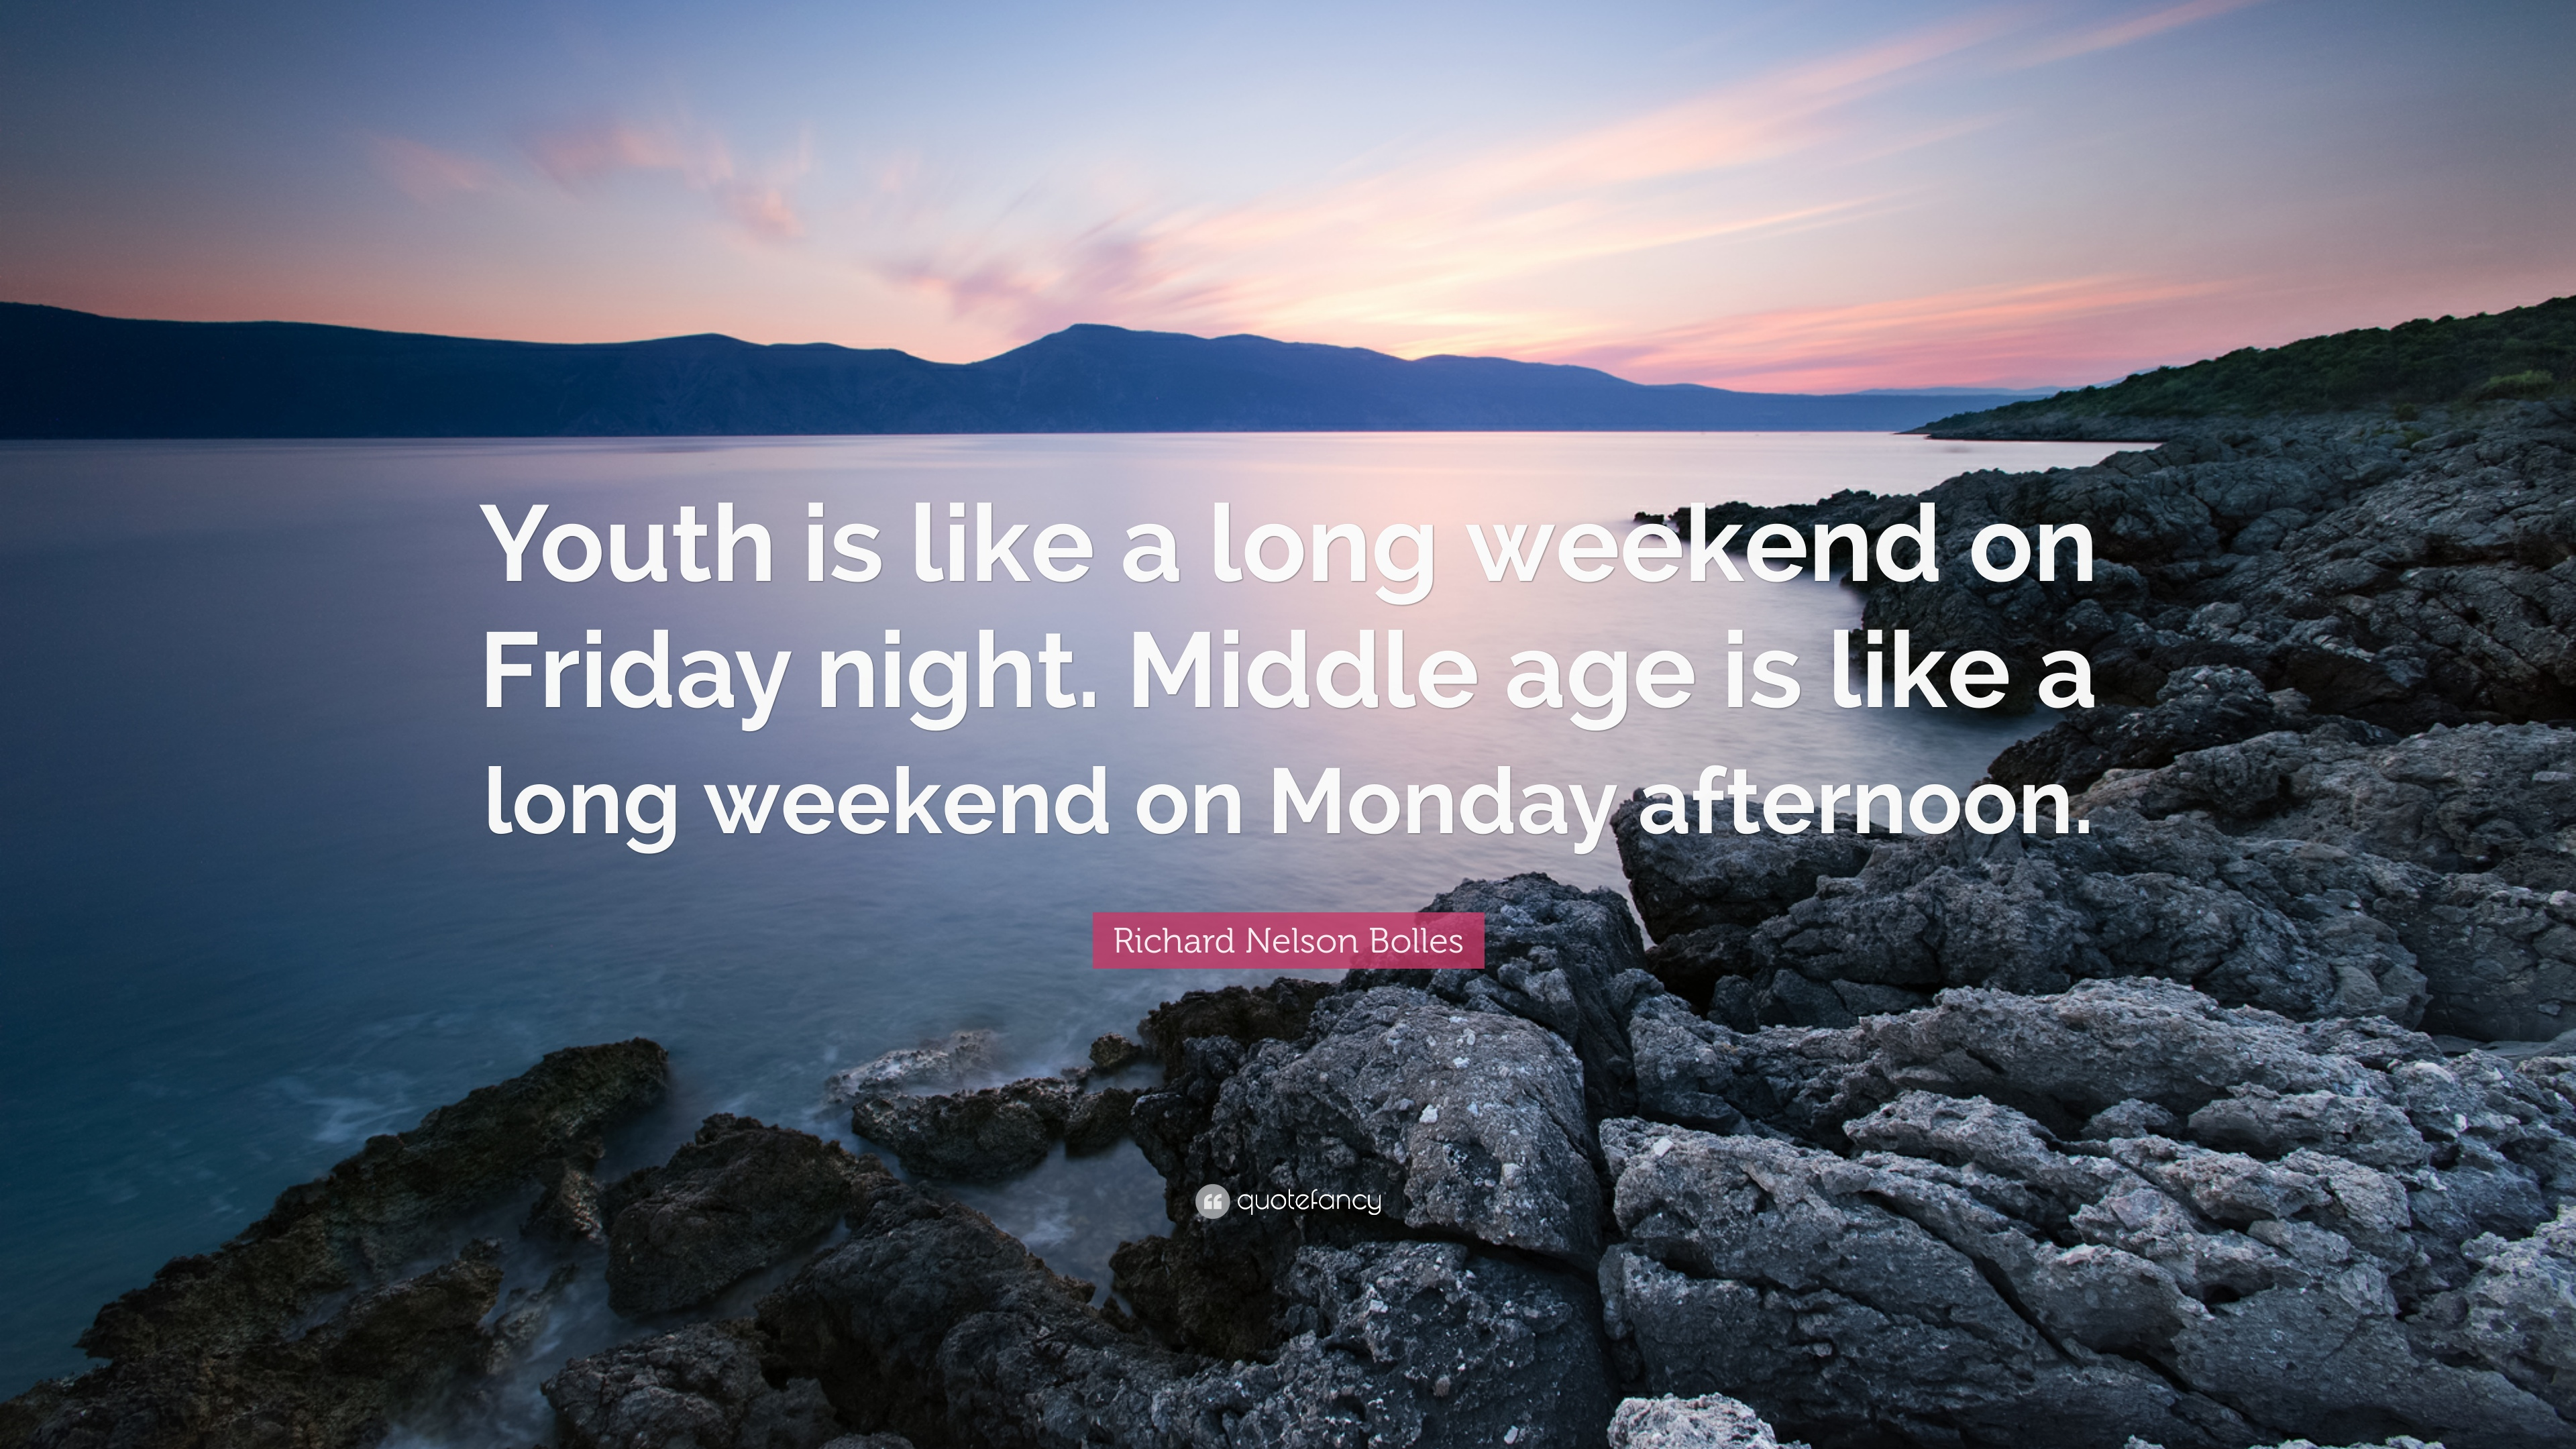 richard nelson bolles quote youth is like a long weekend on richard nelson bolles quote youth is like a long weekend on friday night